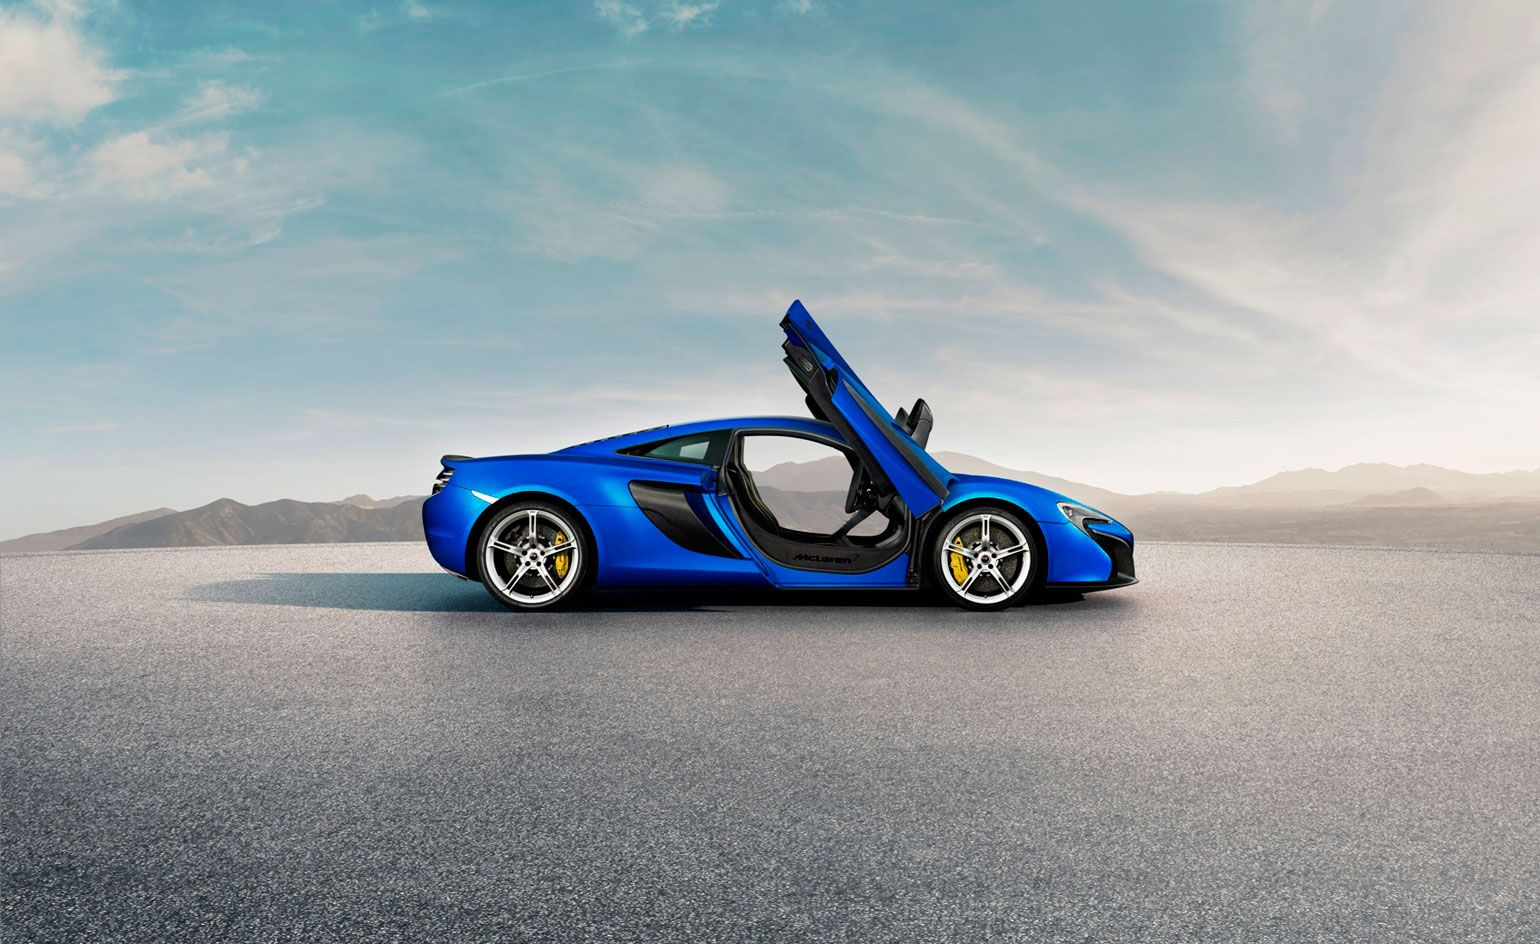 McLarenu0027s 650S Is A New Contender In The Race Between Top Luxury Sports Cars